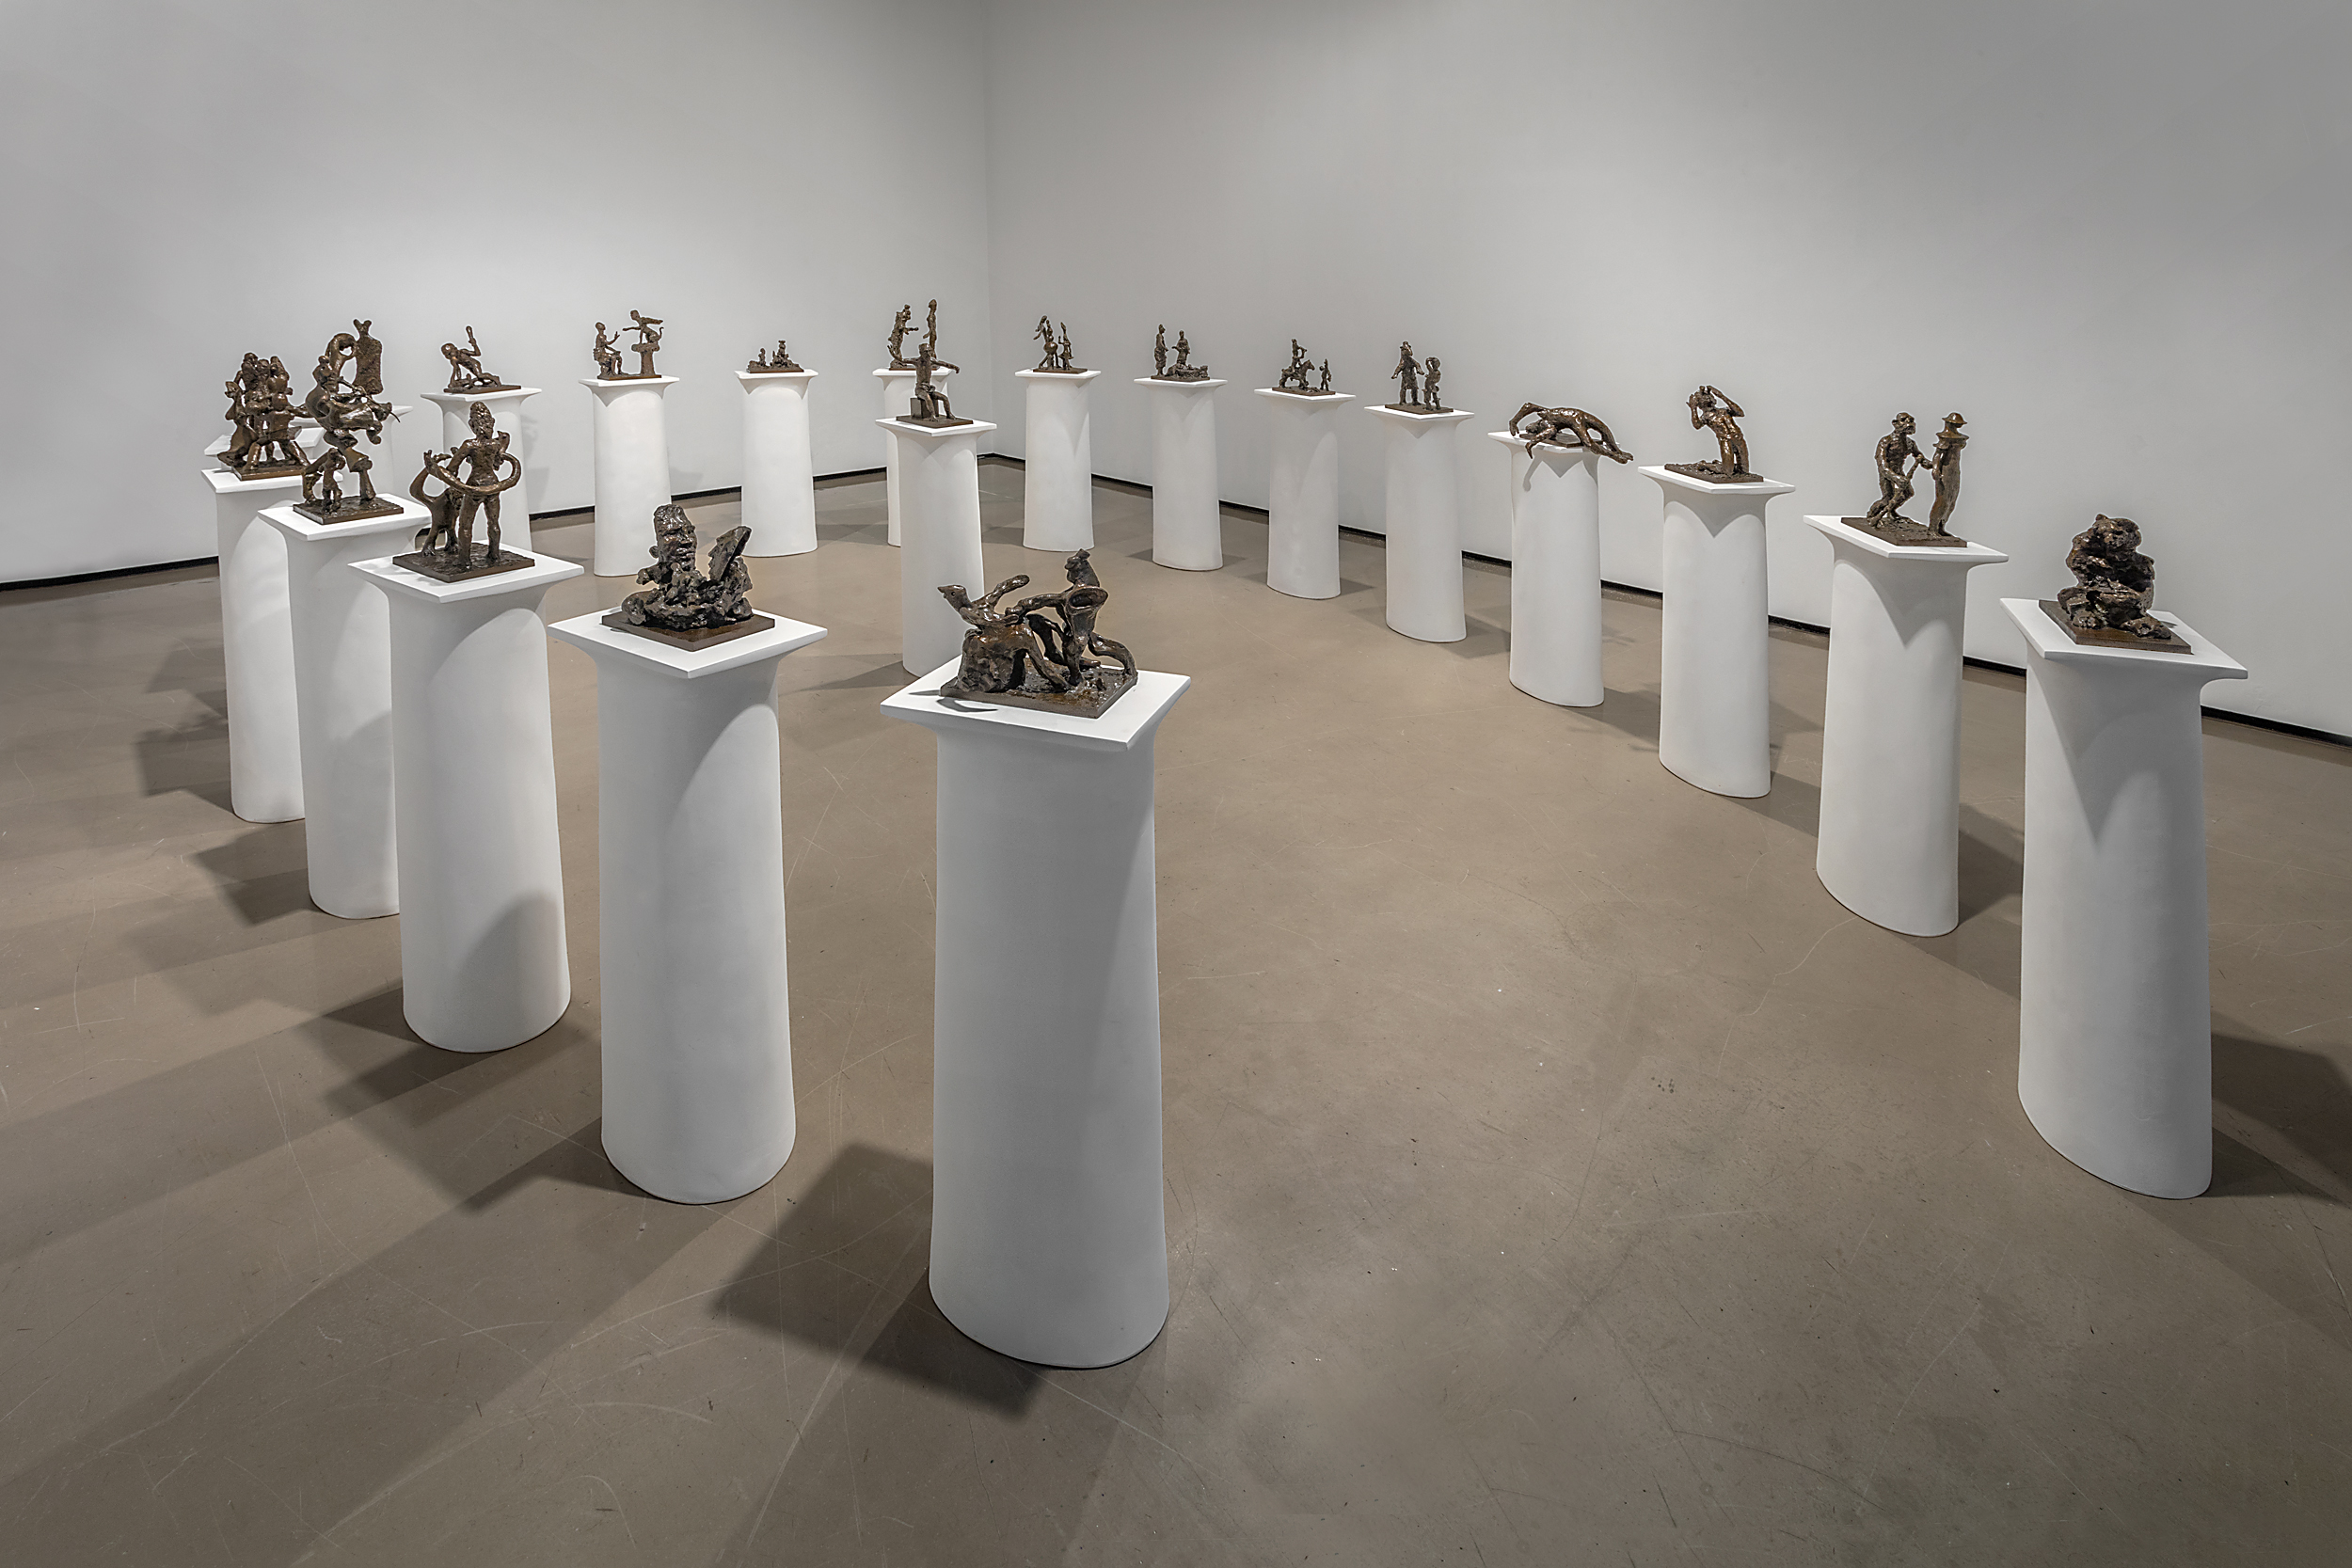 Installation View Courtesy Diego Flores. Saint Clair Cemin: Oedipus,  Courtesy the artist and Paul Kasmin Gallery.